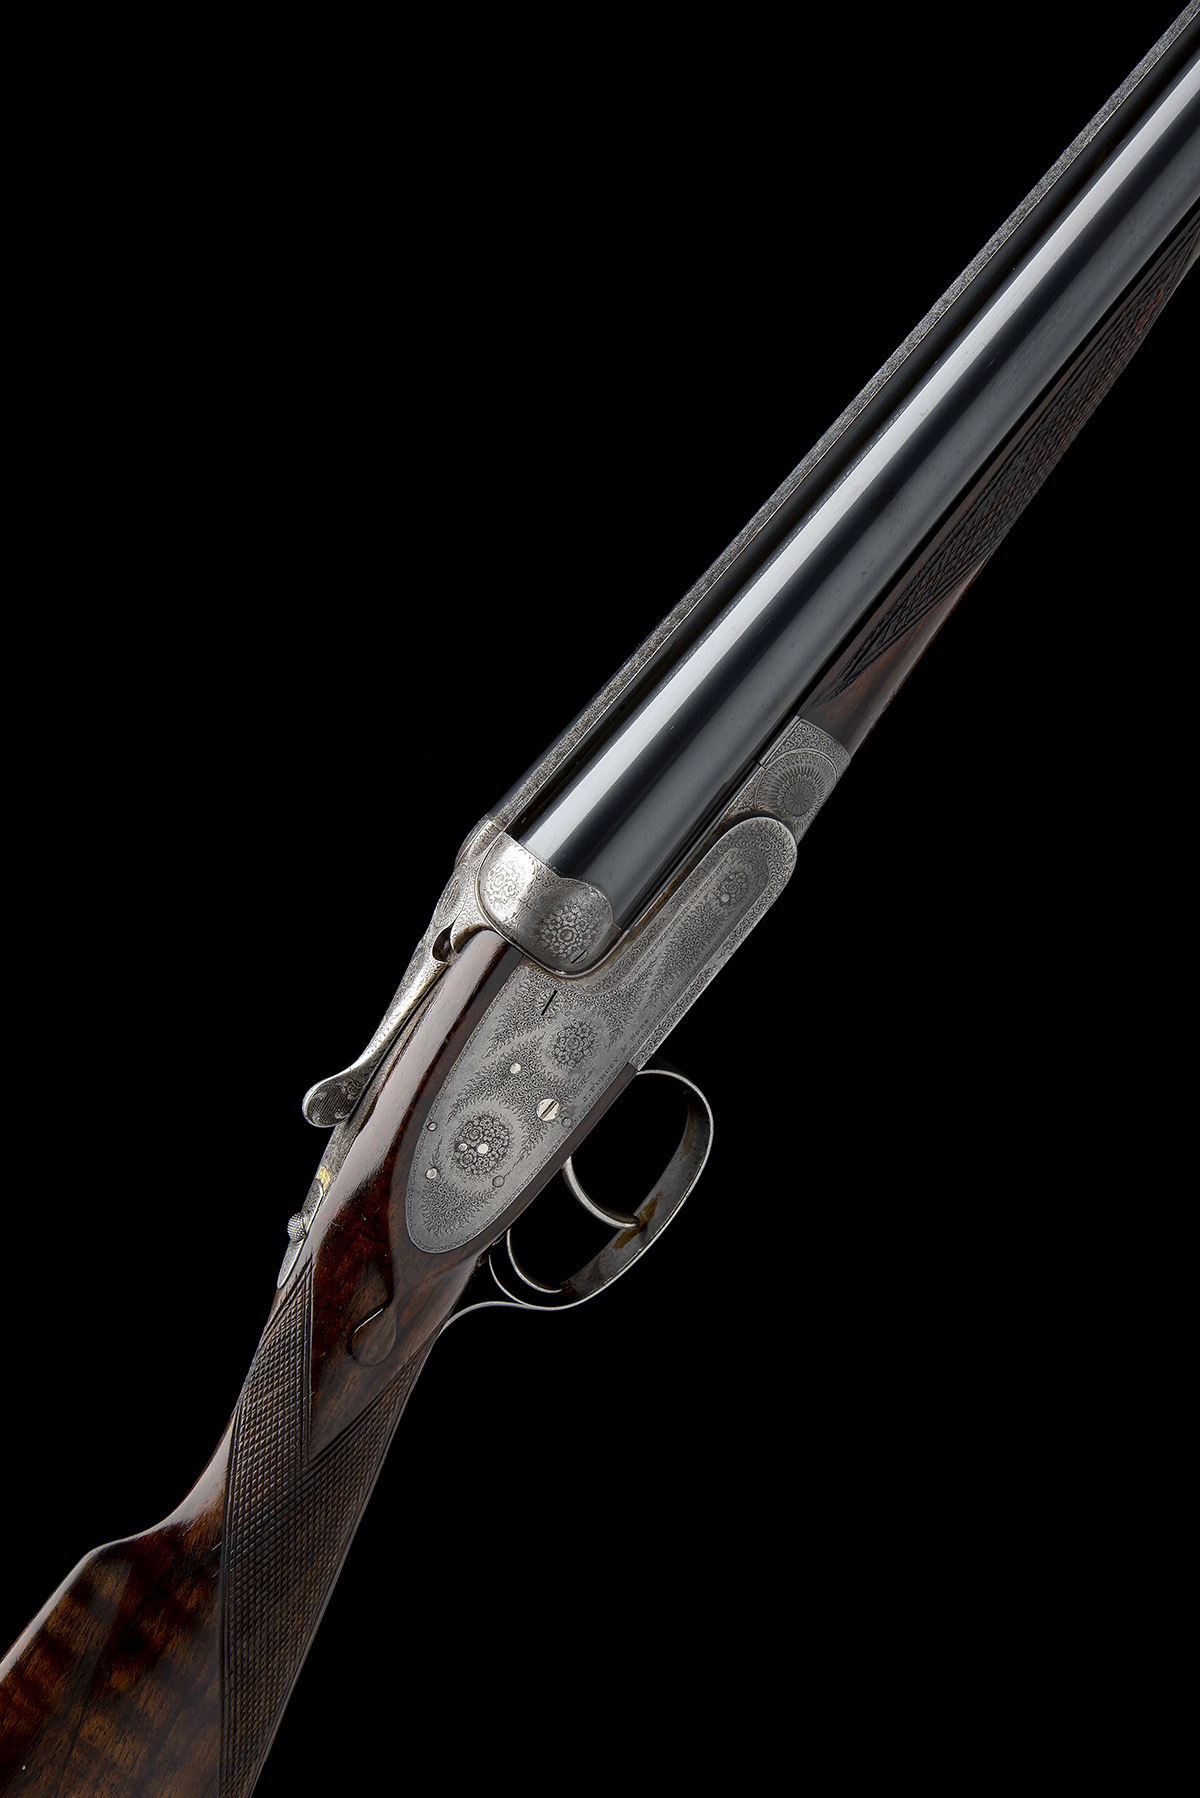 J. PURDEY & SONS A 12-BORE SELF-OPENING SIDELOCK EJECTOR LIVE PIGEON GUN, serial no. 21119, with